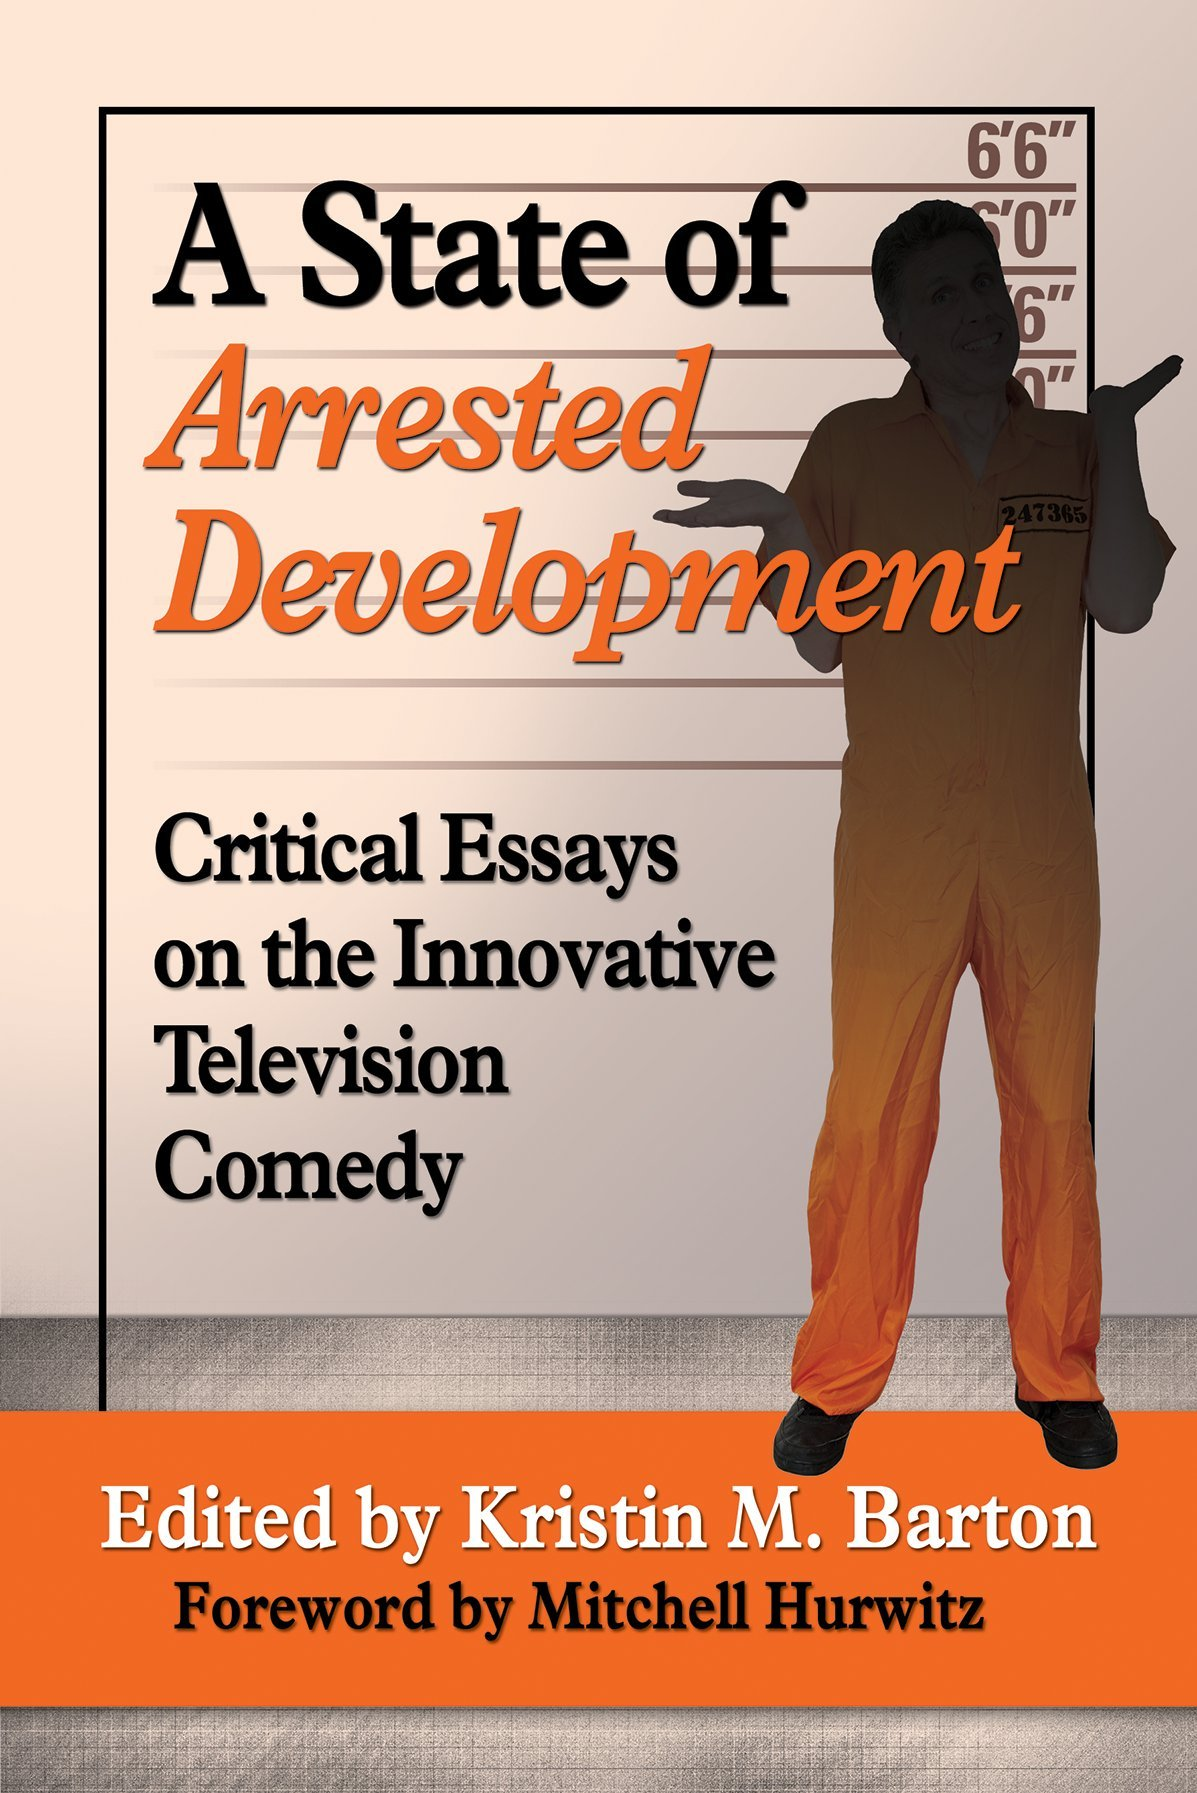 a state of arrested development critical essays on the innovative a state of arrested development critical essays on the innovative television comedy amazon co uk kristin m barton 9780786479917 books